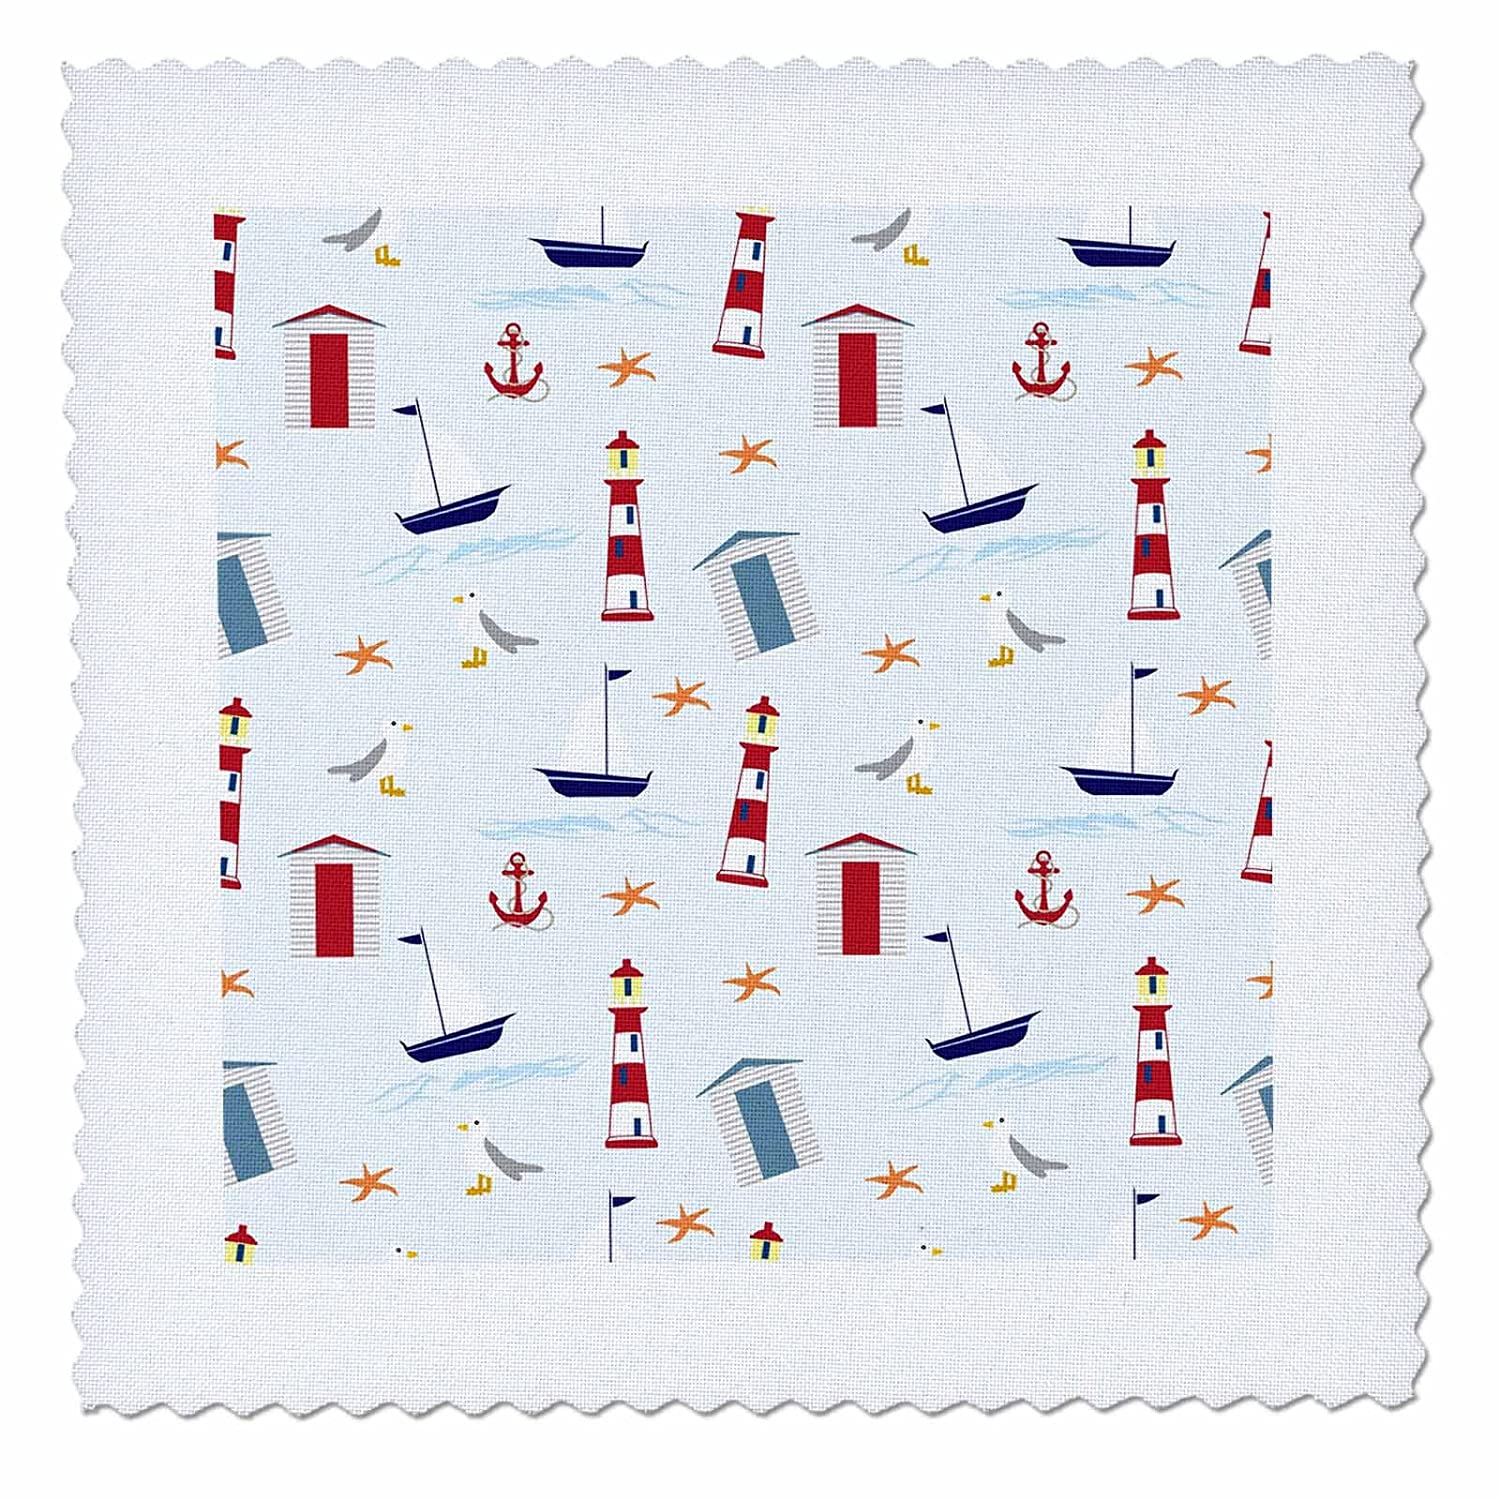 3dRose Sven Herkenrath Art - A Cute Pattern of Boats Light Houses and Anchors on Blue Background - 18x18 inch quilt square (qs_280422_7)